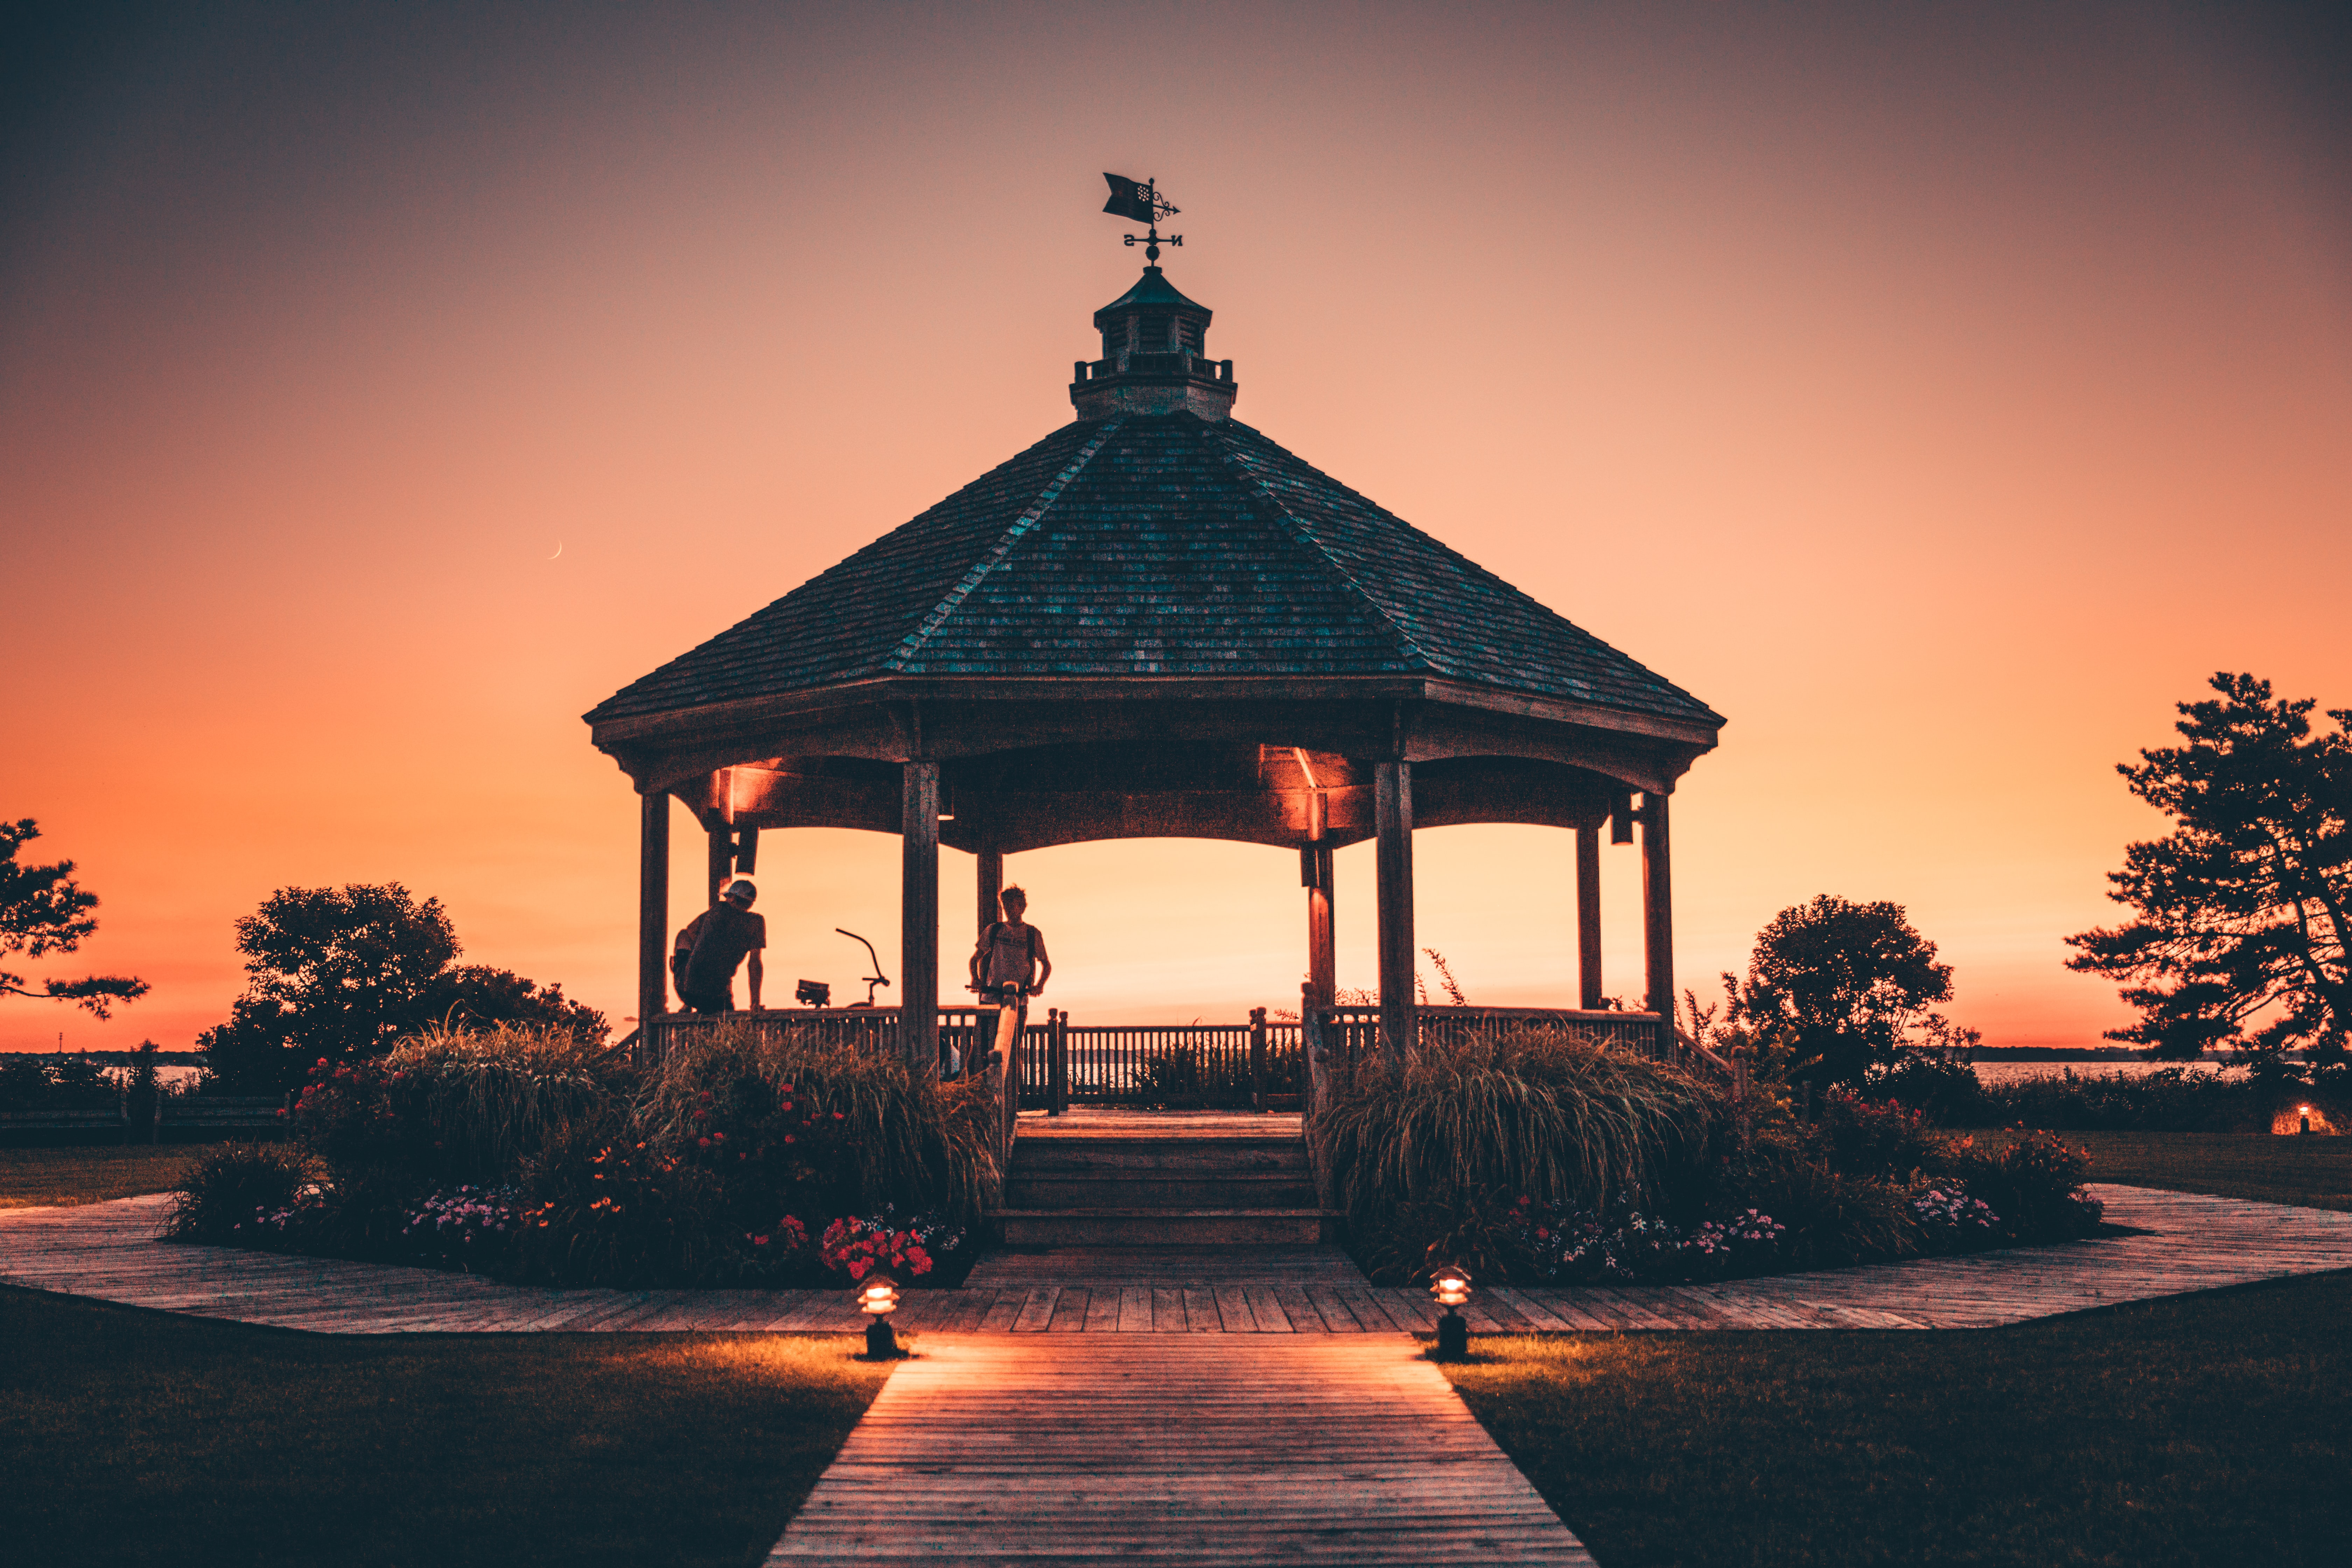 band stand at the field during sunset